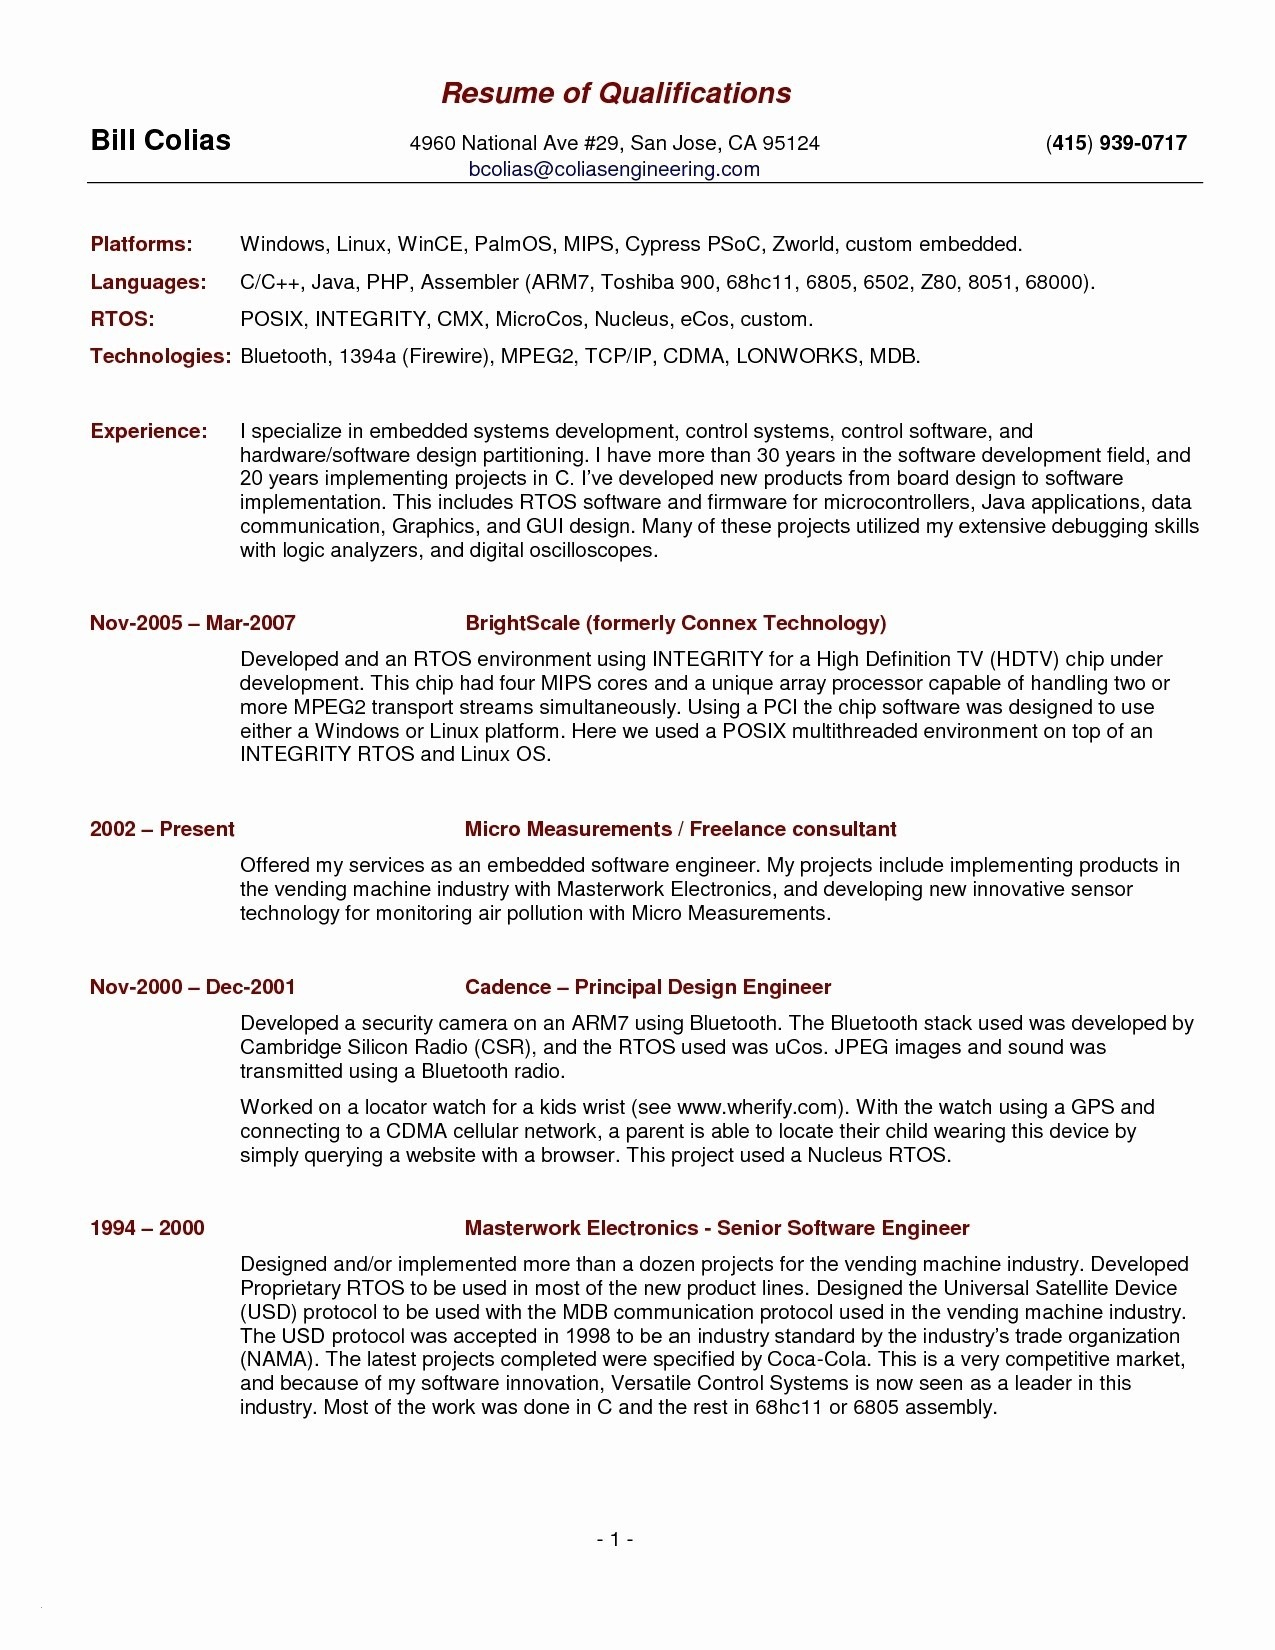 service industry resume template example-Resume Templates Pdf Free Inspirational Lovely Pr Resume Template Elegant Dictionary Template 0d Archives 19-g